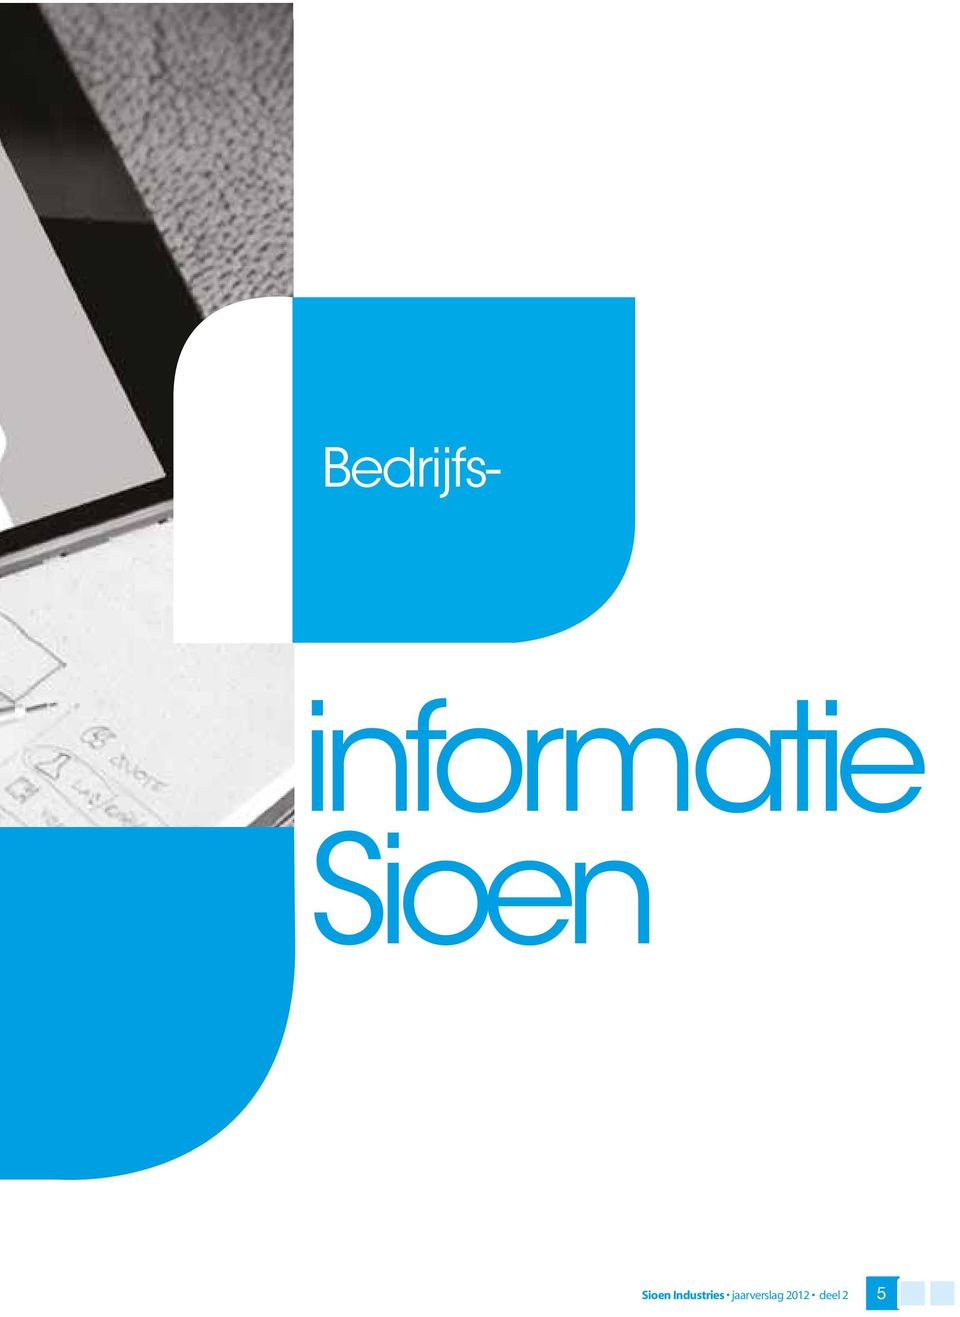 Sioen Industries